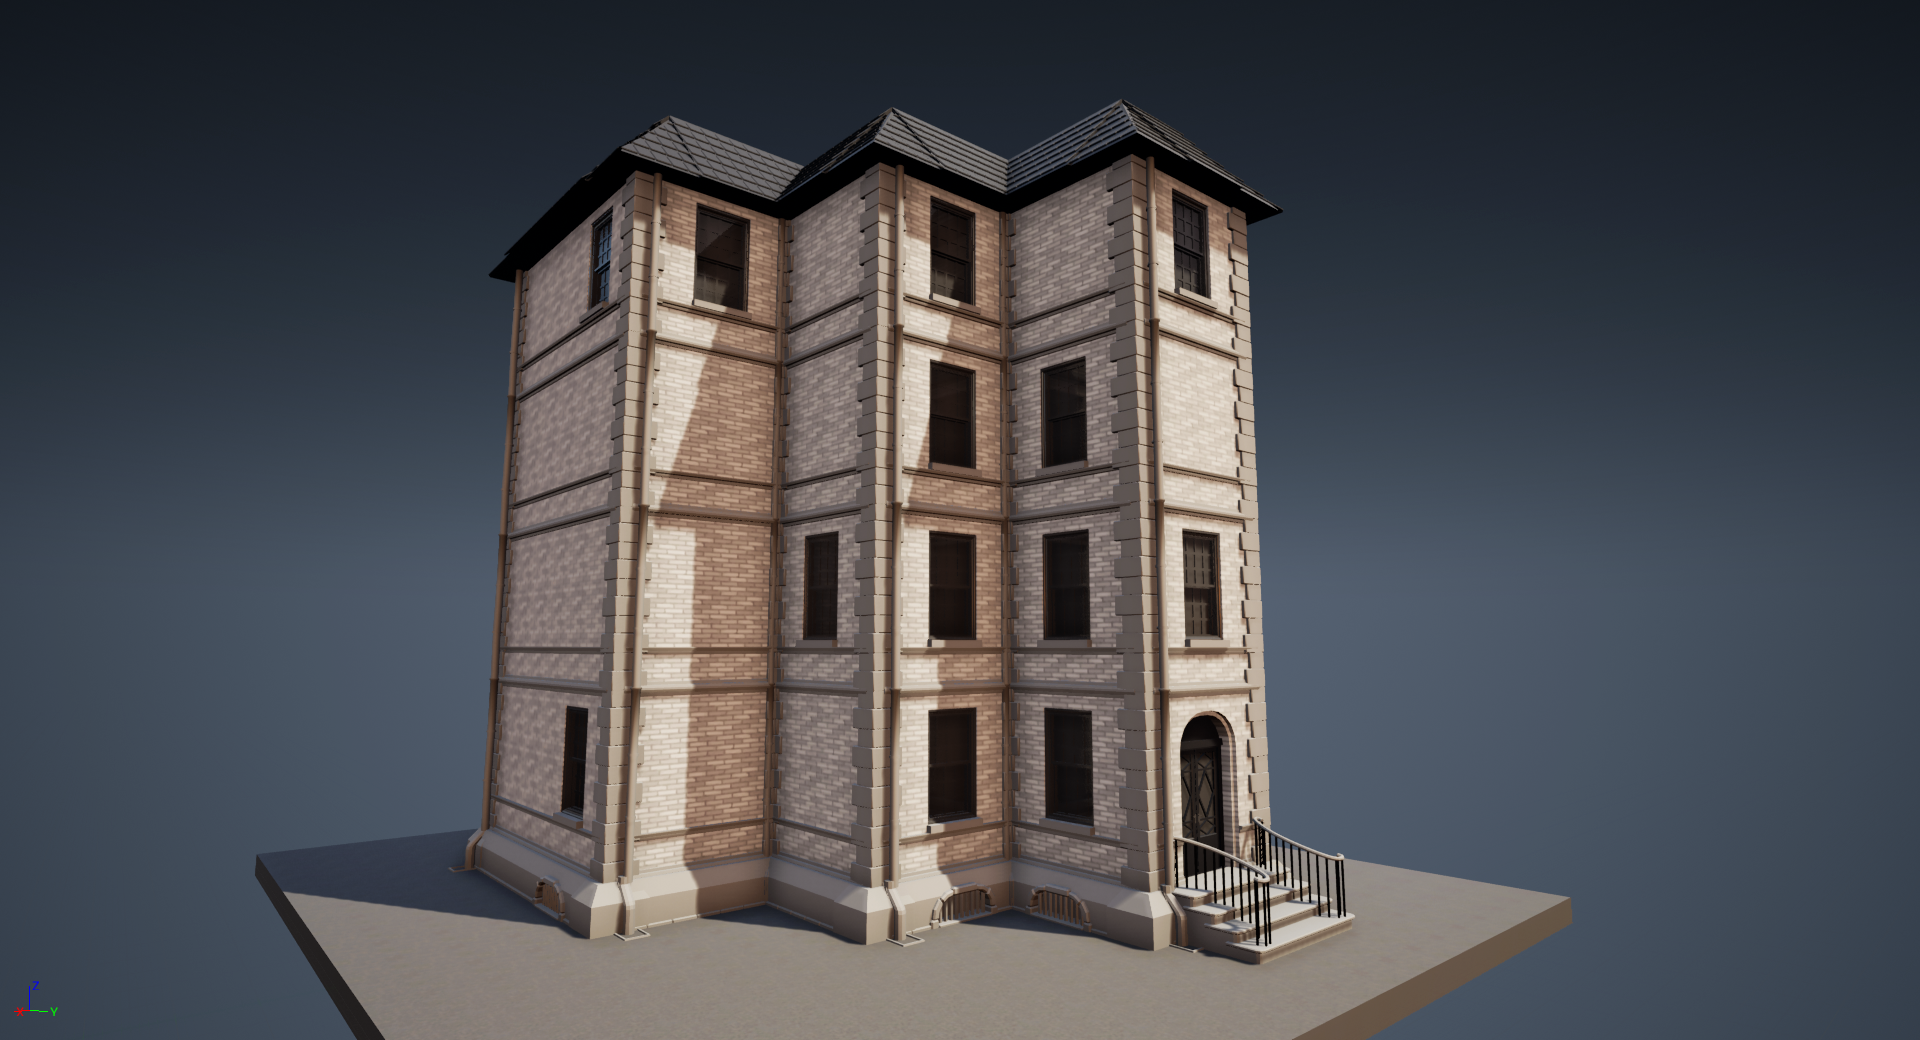 WIP][UE4] House generation with Houdini — polycount